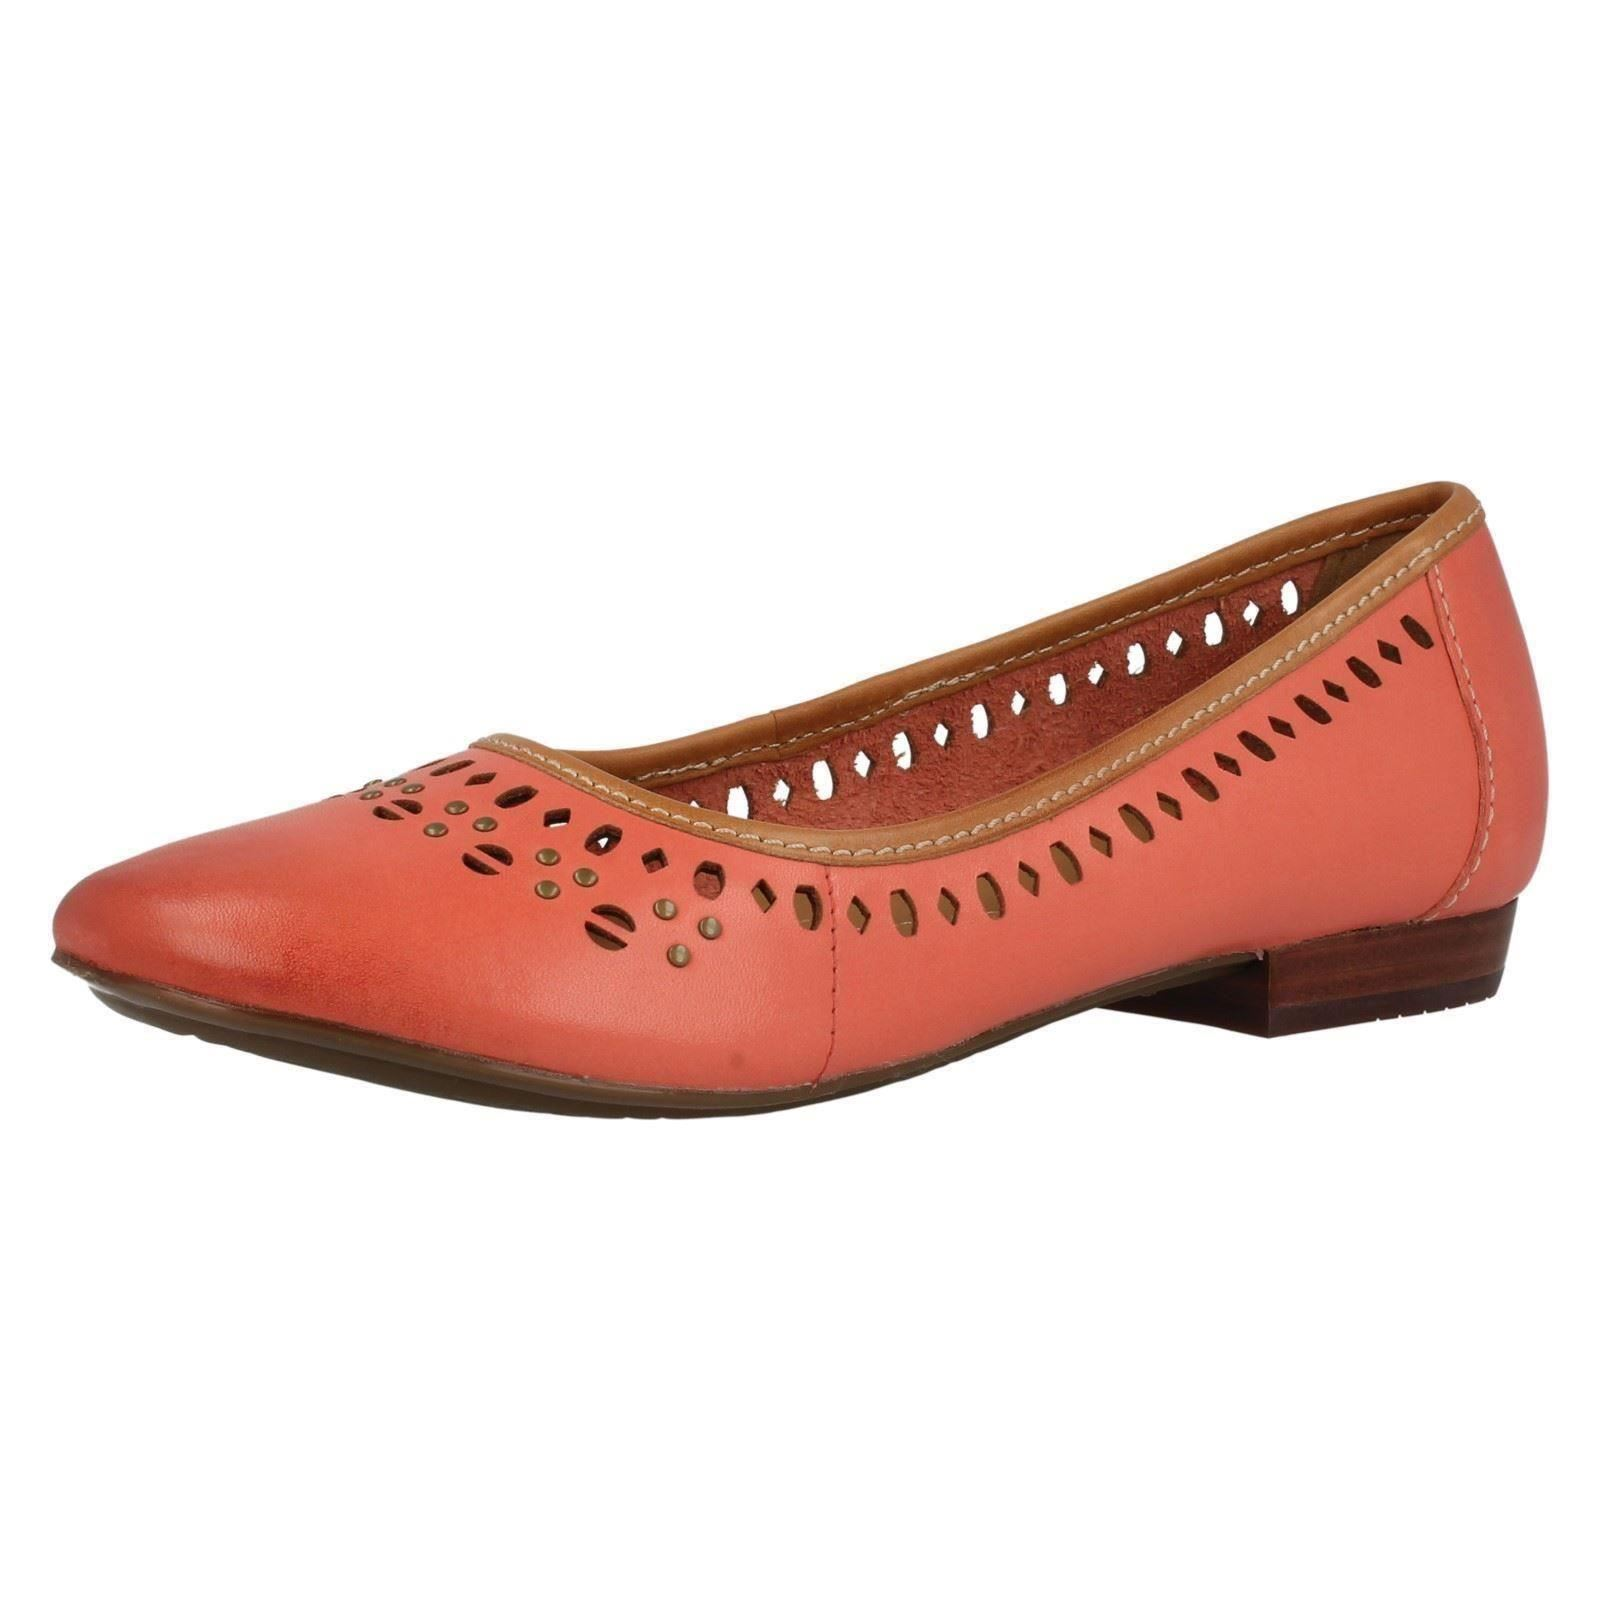 Free shipping on women's ballet flats at coolvloadx4.ga Shop ballet flats for women from the best brands including Tory Burch, Sam Edelman, Valentino and more. Totally free shipping & returns.